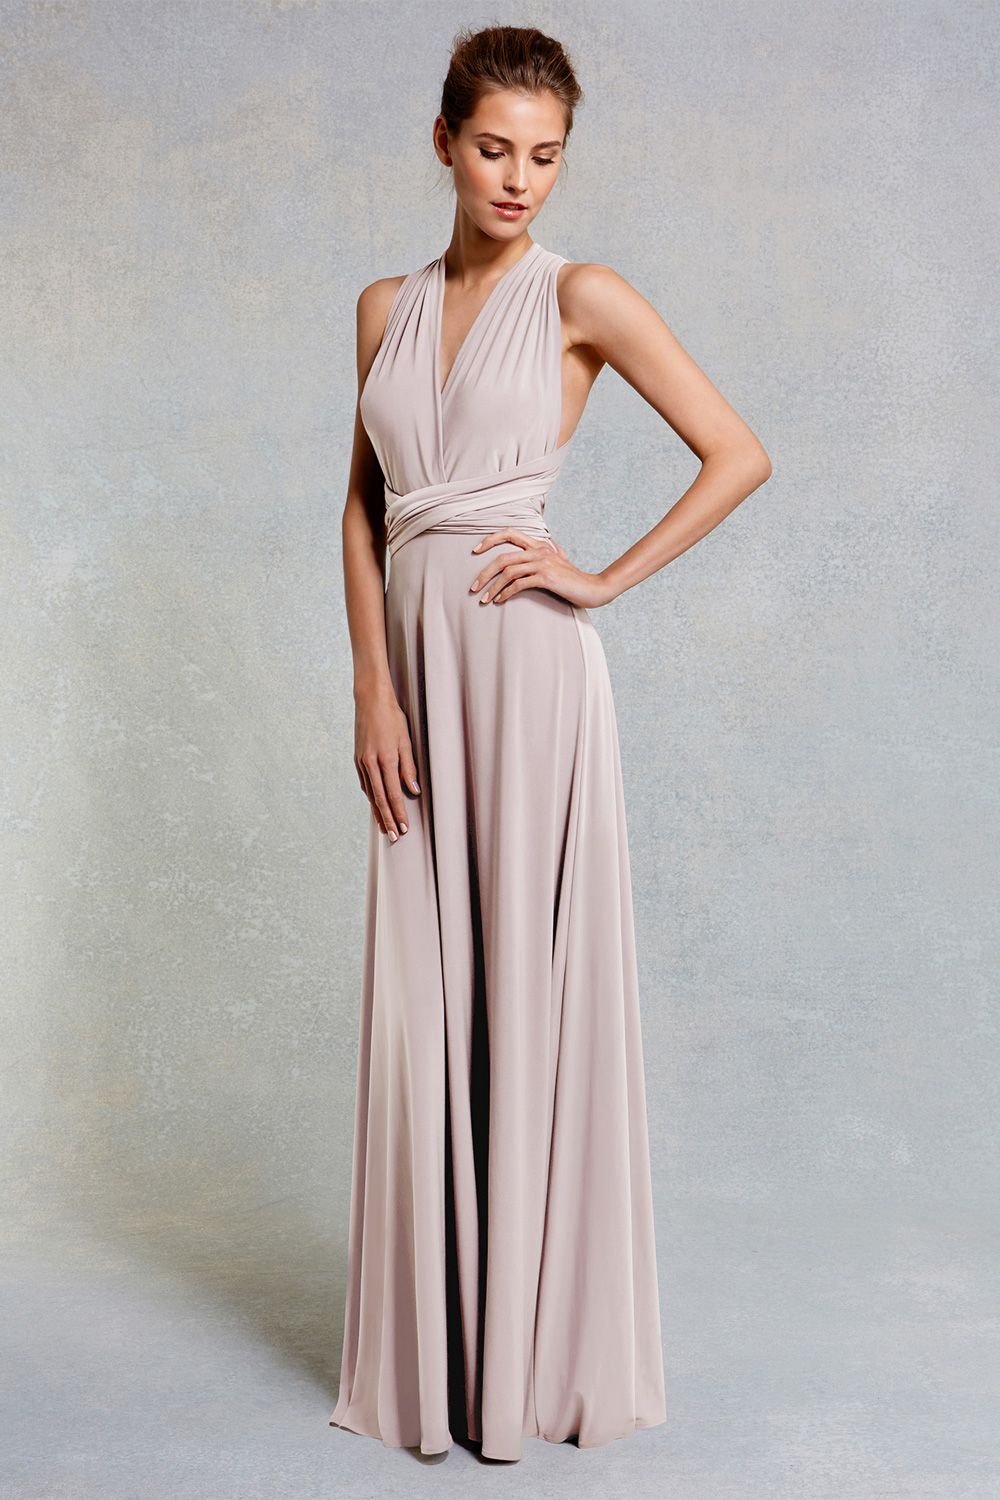 outlet for sale great deals brand quality CORWIN MULTI TIE MAXI SL | For that day | Coast bridesmaid ...